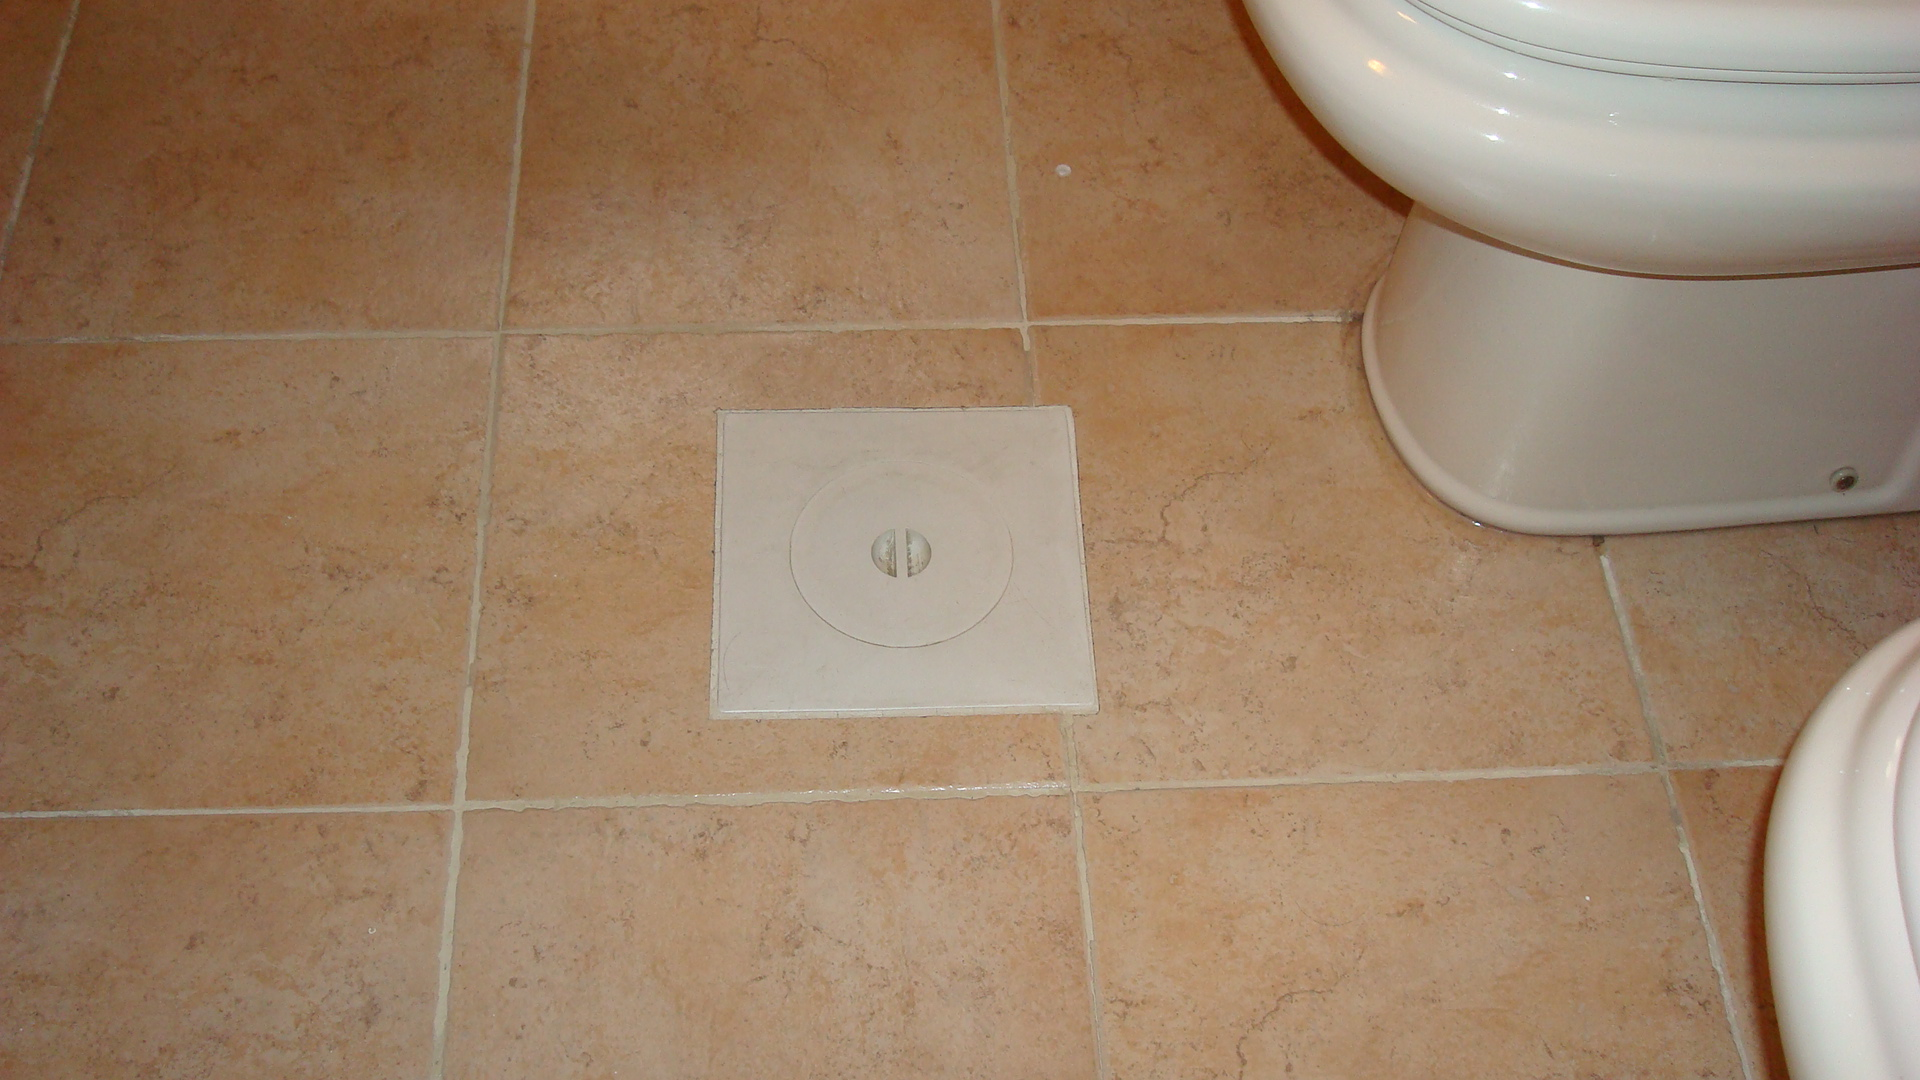 Laundry Room Floor Drain Find This Pin And More On Laundry Room